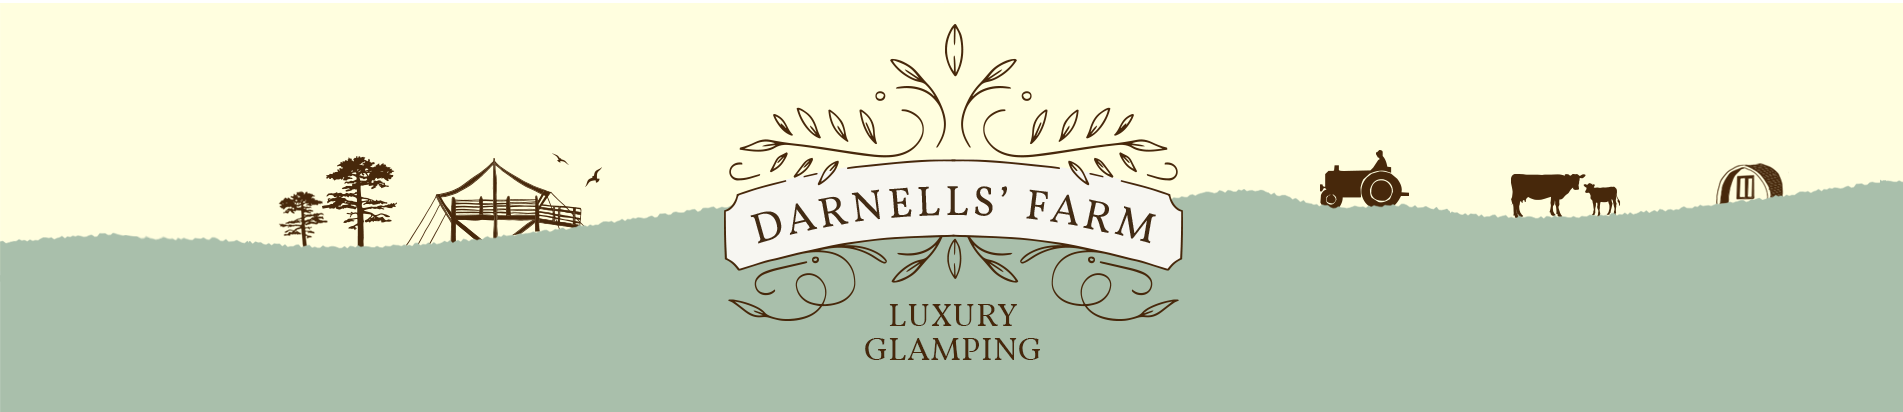 Darnells Farm Luxury Glamping